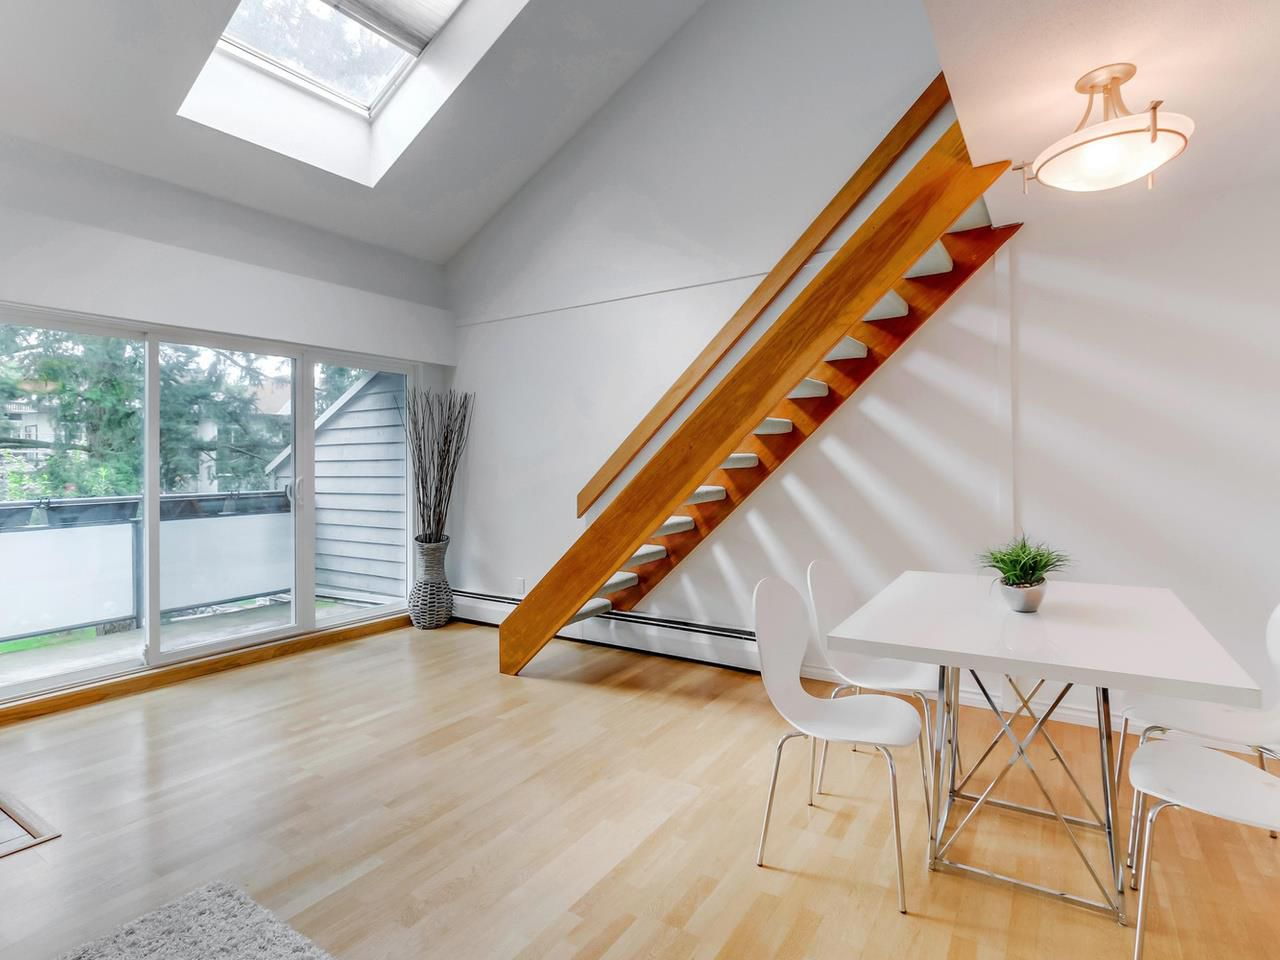 Main Photo: PH1 2125 YORK AVENUE in Vancouver: Kitsilano Condo for sale (Vancouver West)  : MLS®# R2089526